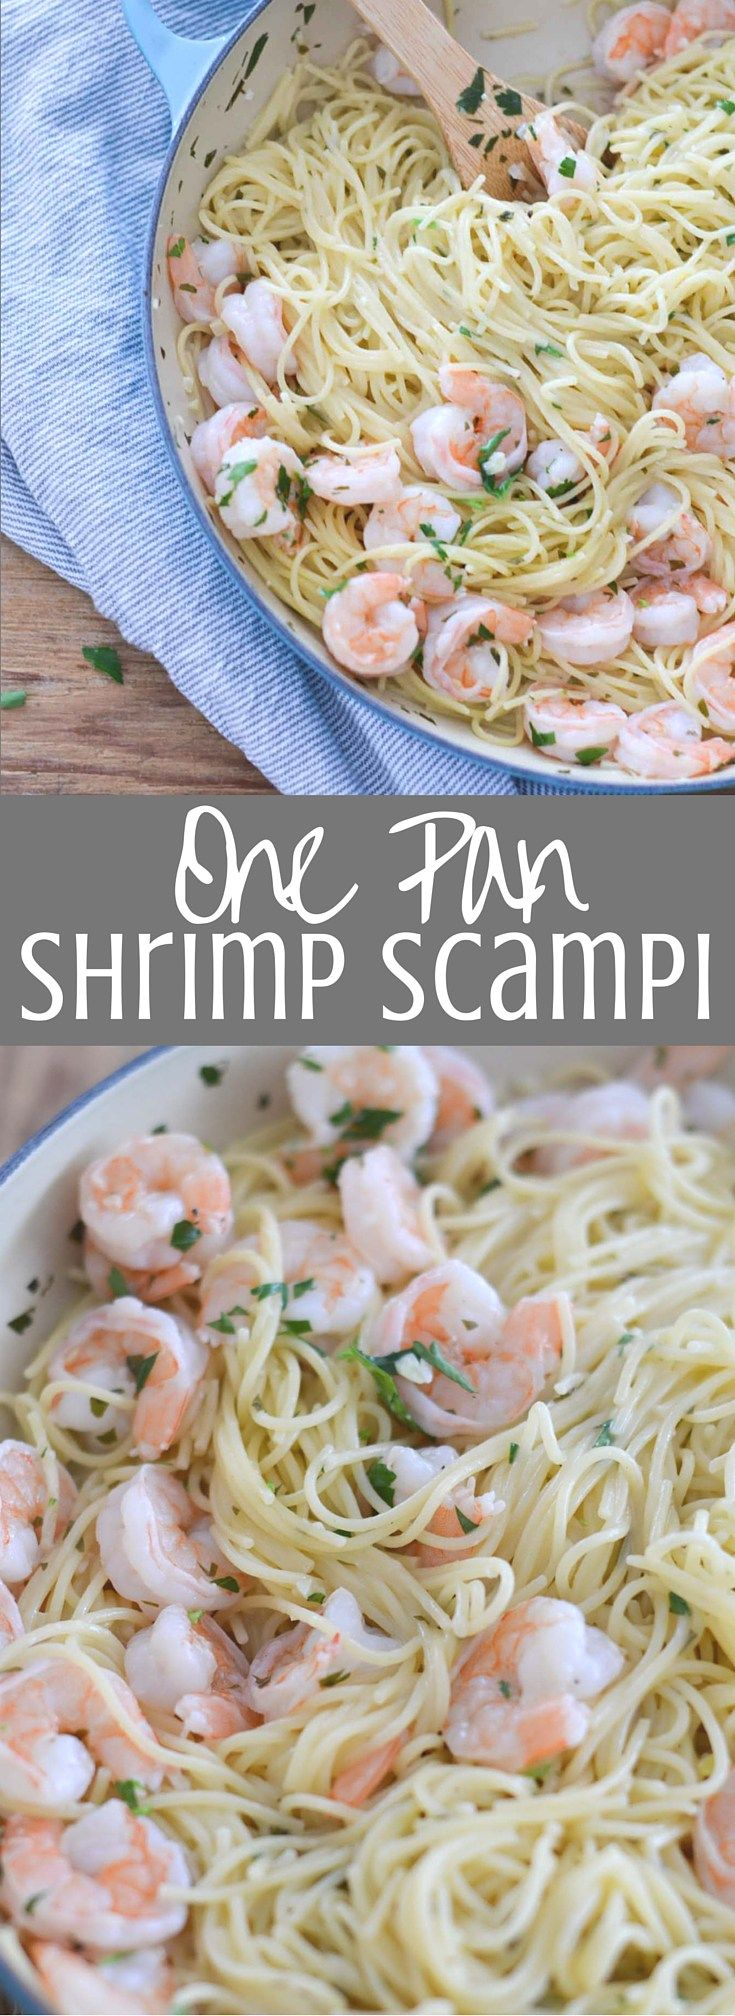 One Pan Shrimp Scampi is filled with shrimp, garlic, lemon, white wine, and fresh parsley and ready in about 25 minutes. The perfect weeknight dinner! Clickthrough for the full recipe and pin for later!